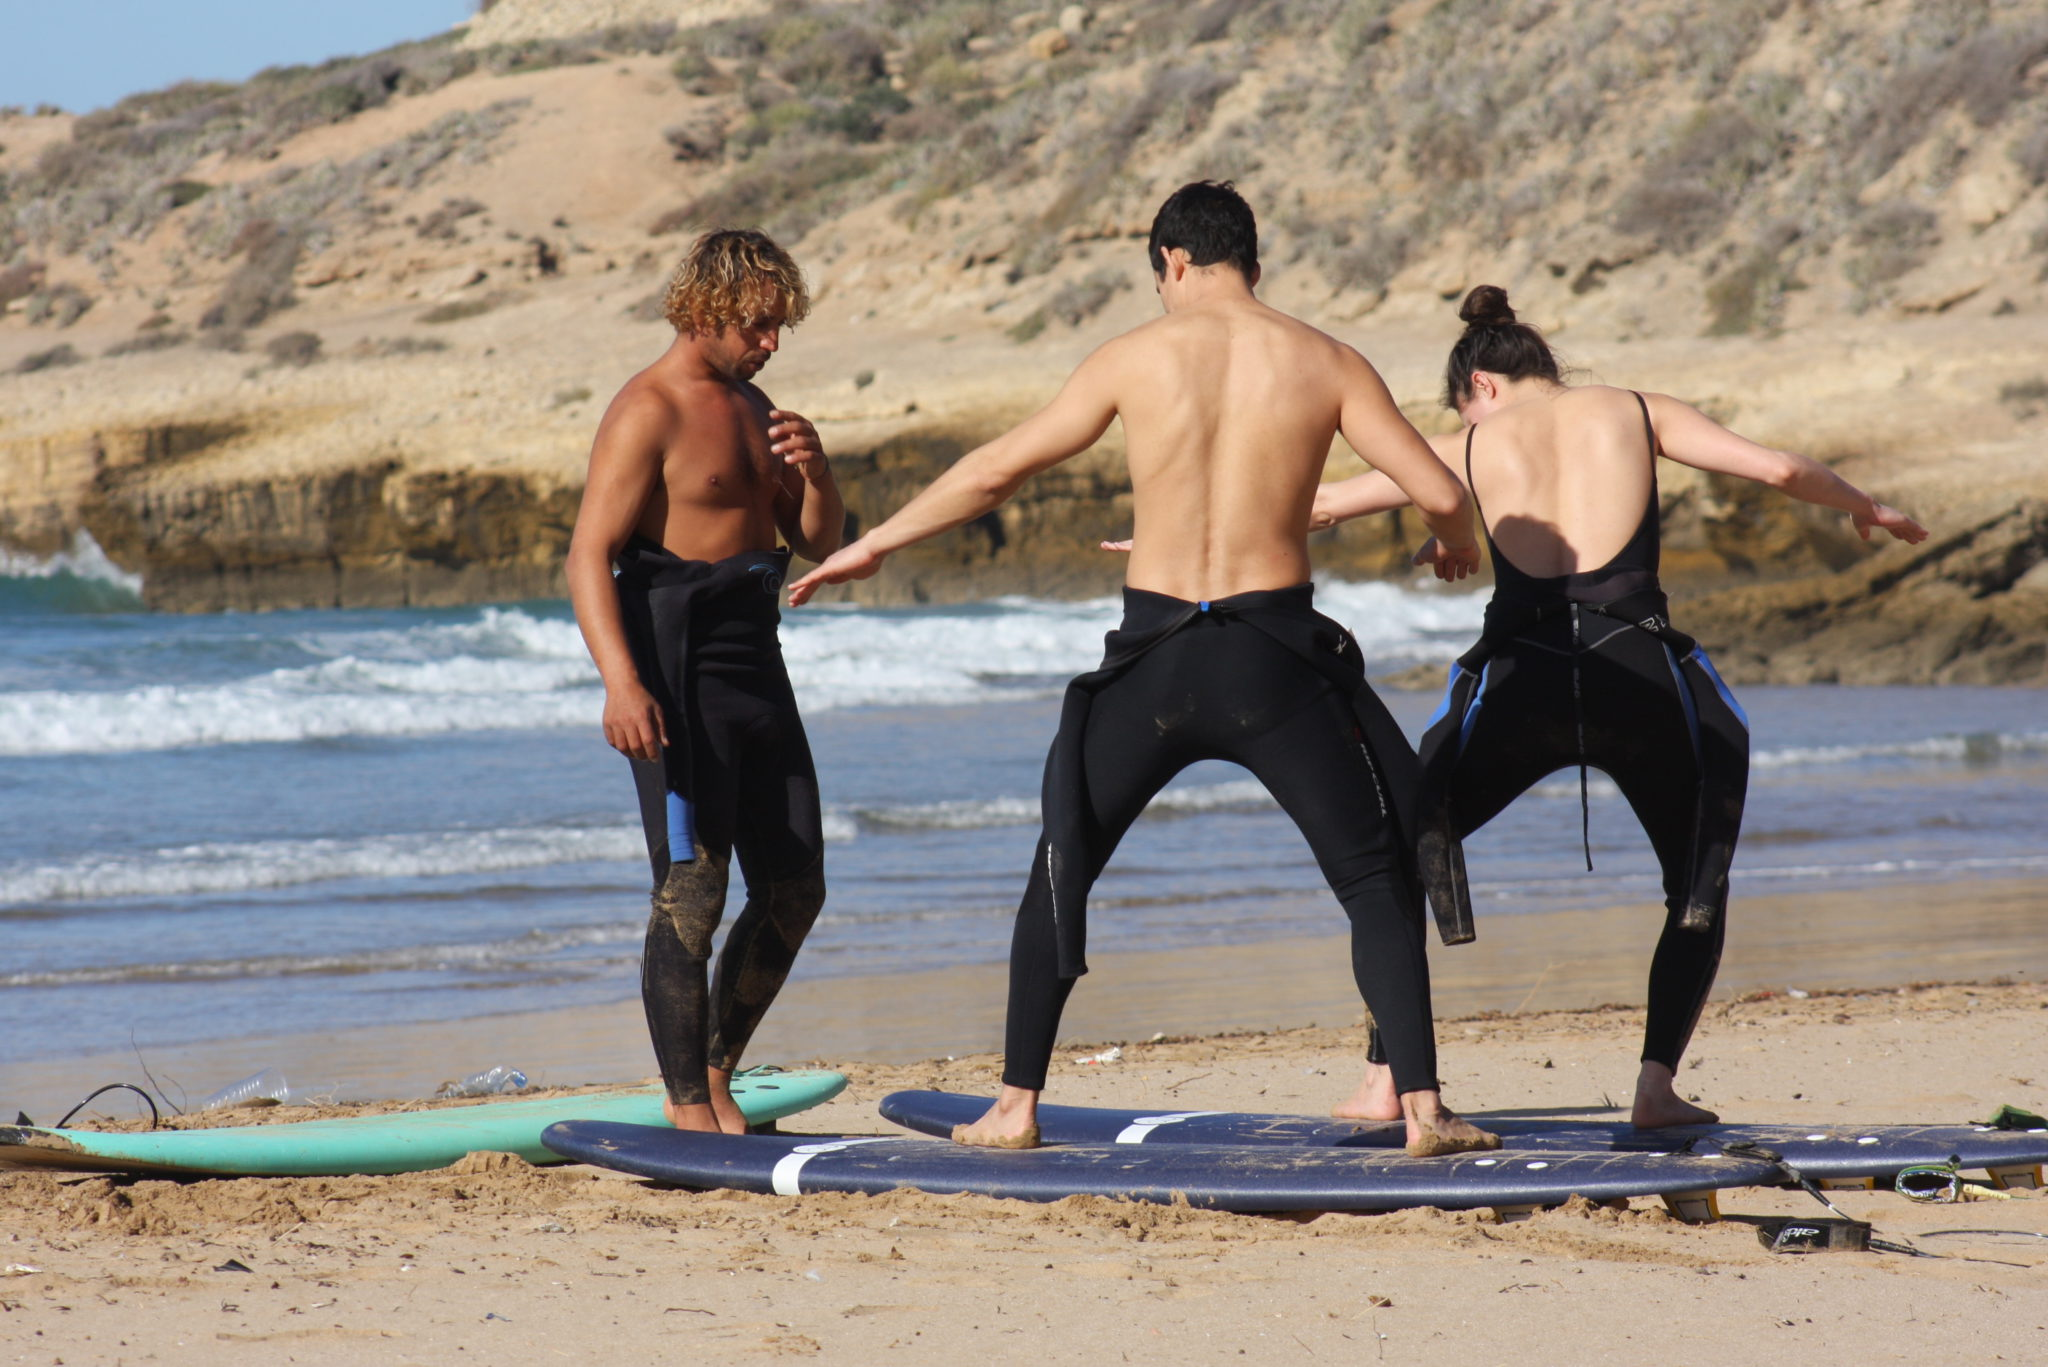 1 day Morocco surfing experience: Learn to surf in Tamraght